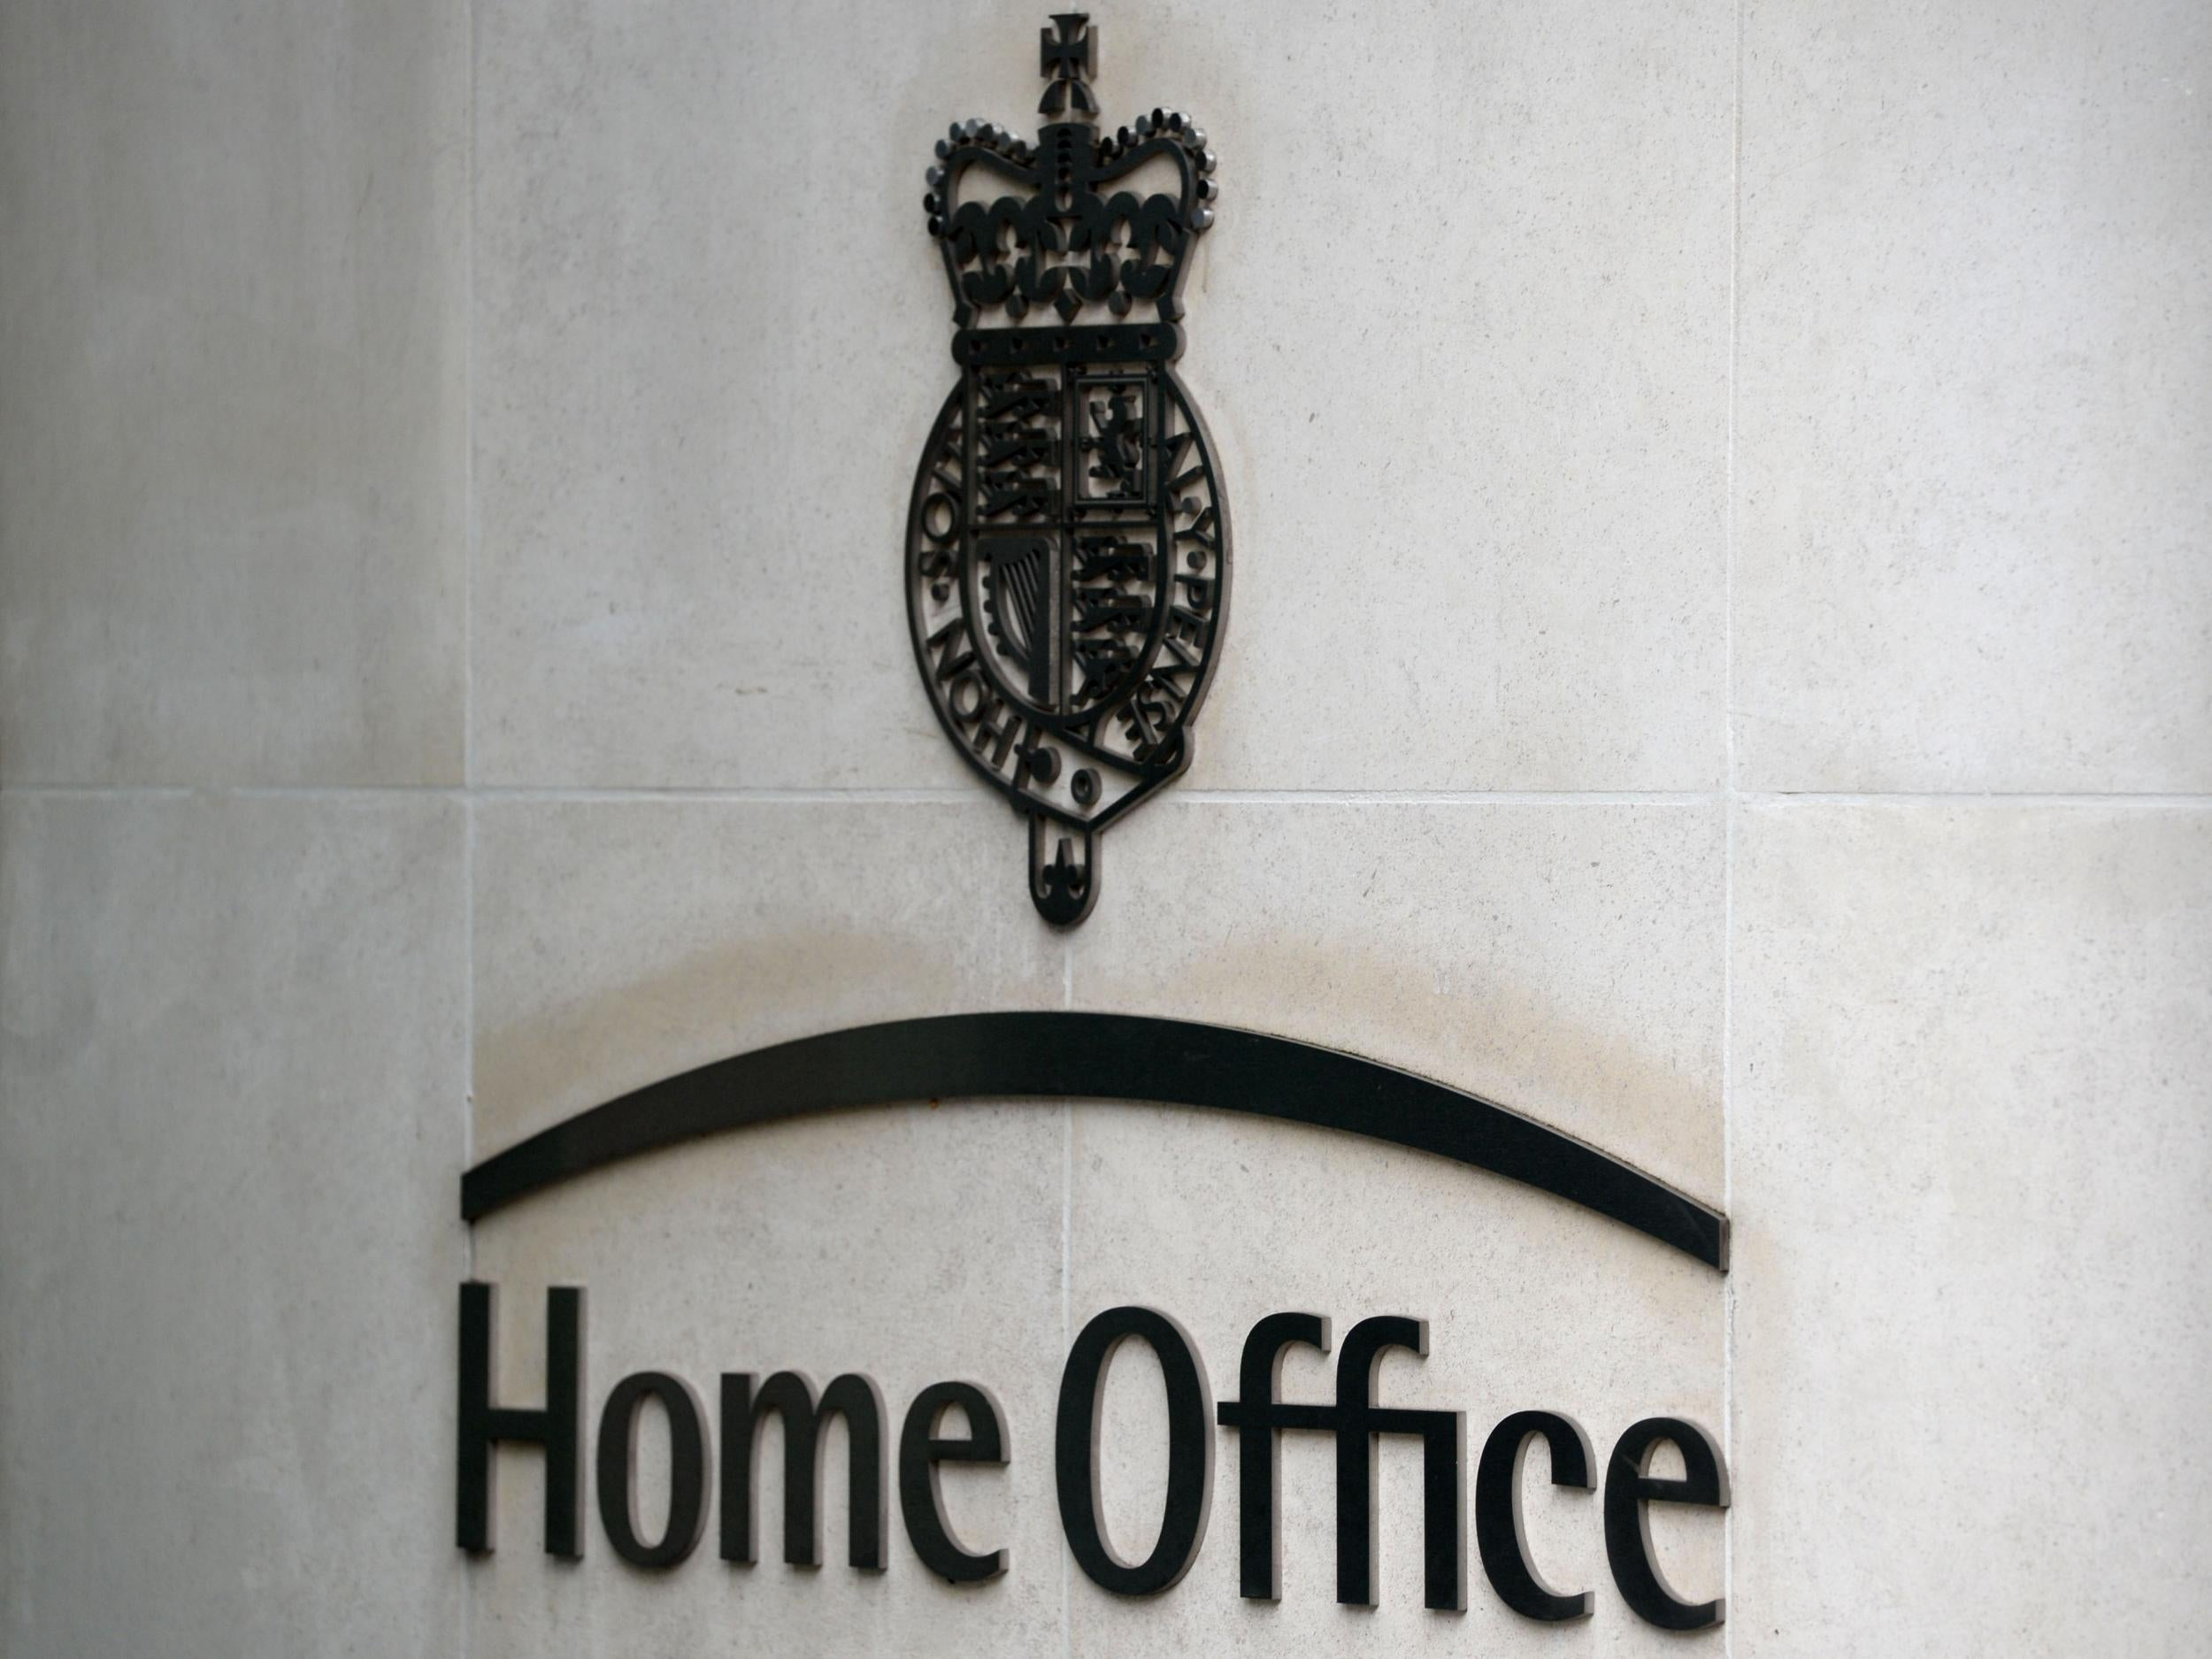 Home Office making hostile environment for EU citizens worse, European Parliament warns